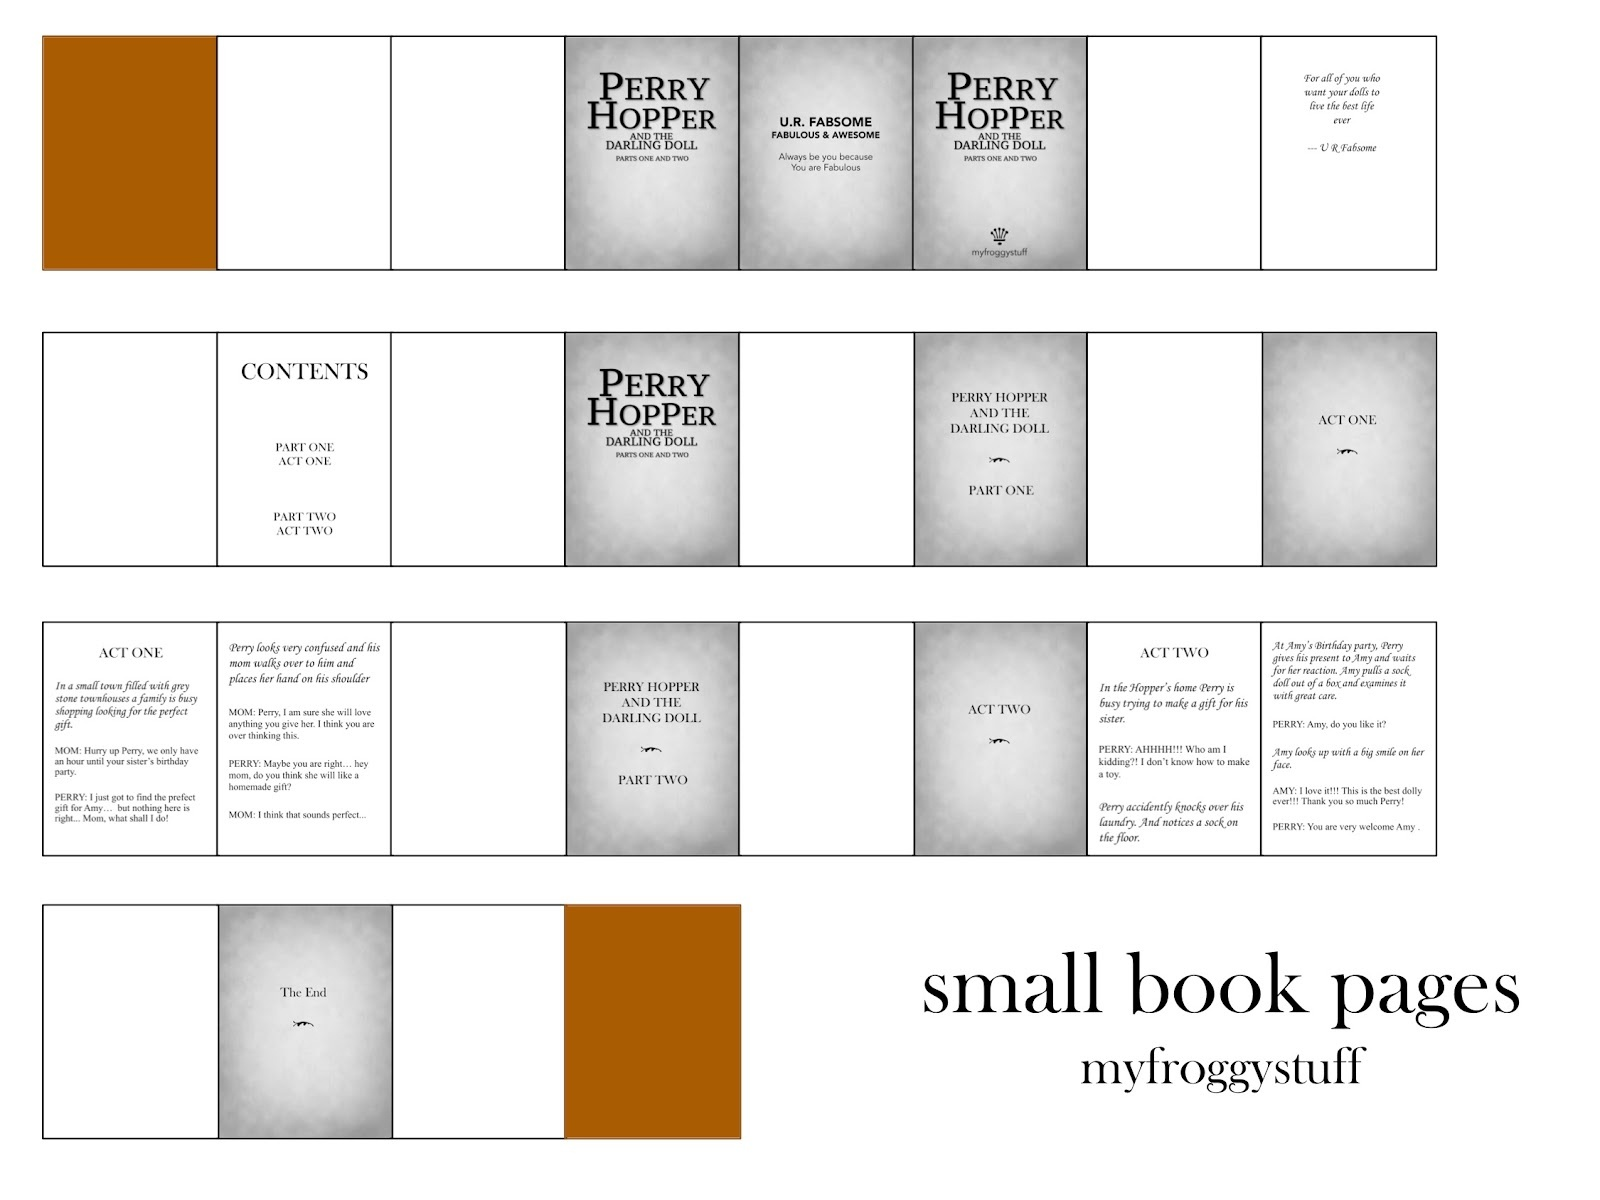 My Froggy Stuff: How To Make A Miniature Harry Potter Book For Dolls - Myfroggystuff Blogspot Free Printables